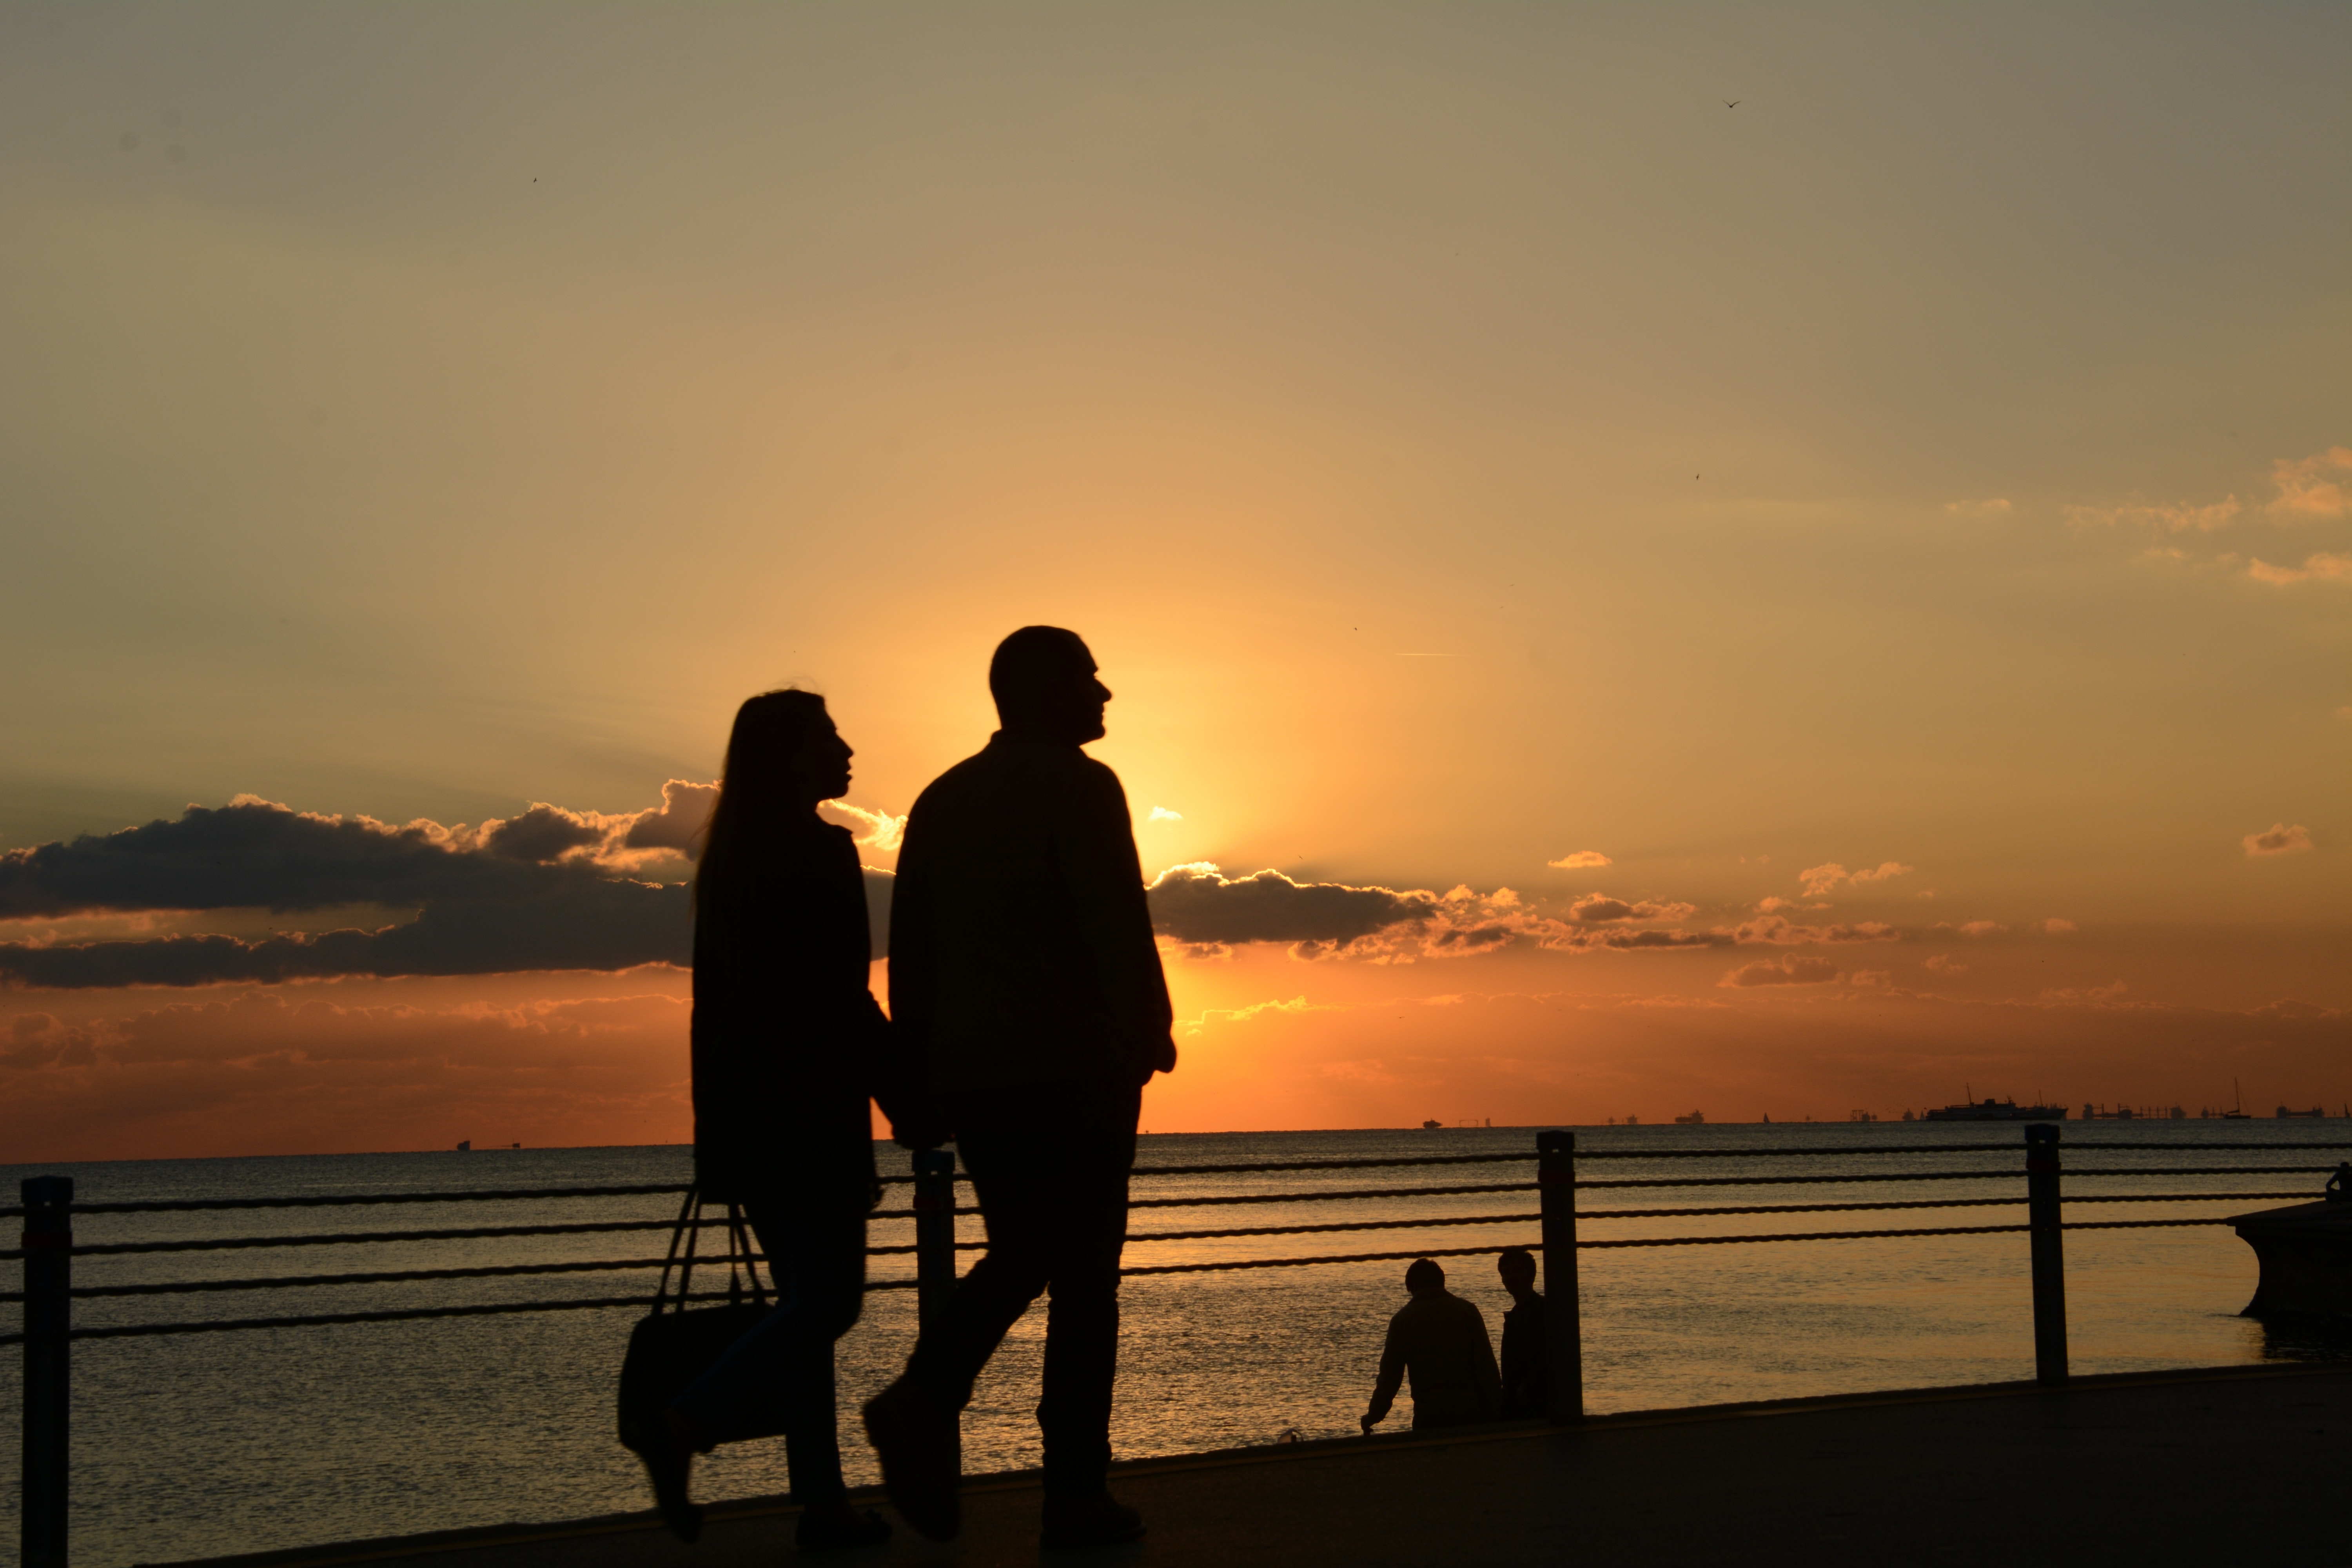 Man and Woman Silhouette Walking during Sunset, Clouds, Evening, Holiday, Nature, HQ Photo